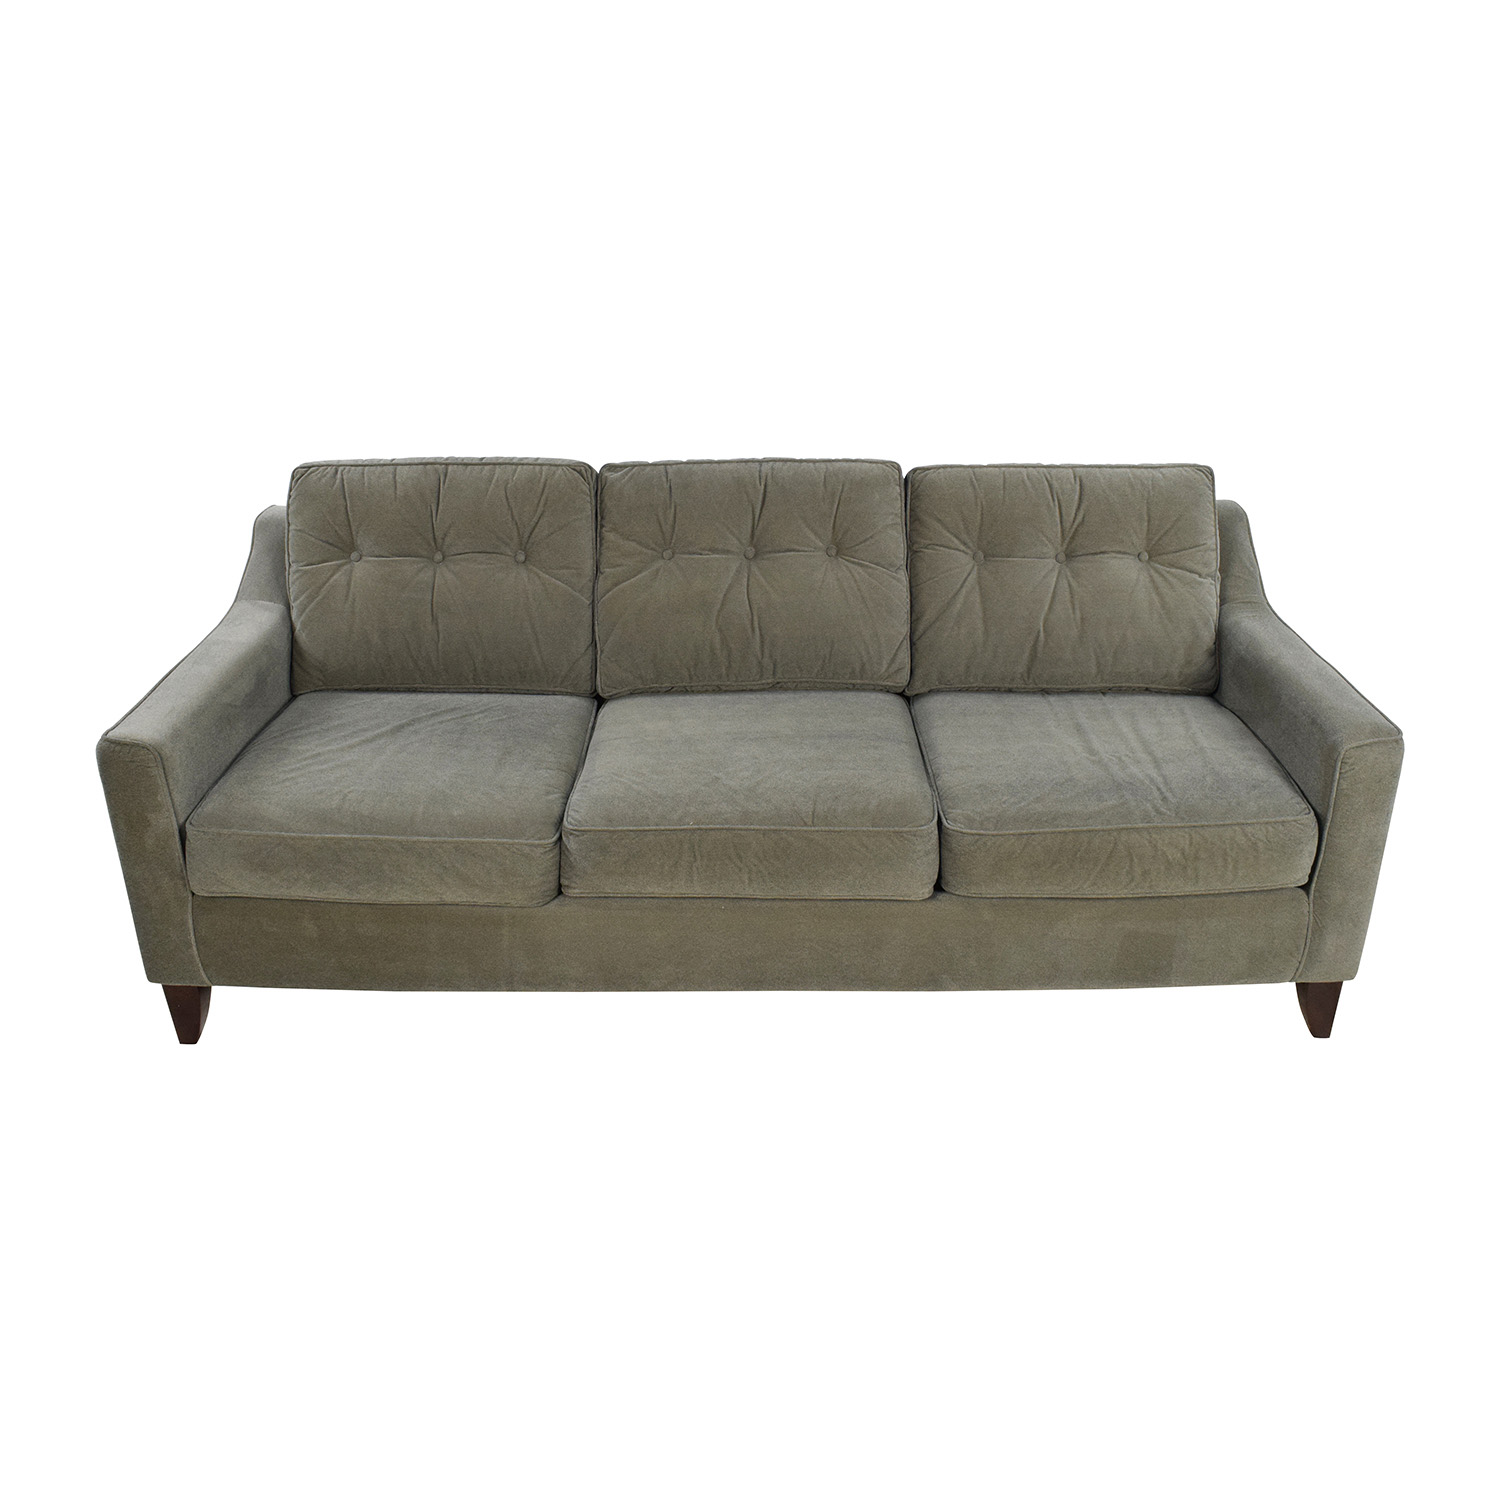 Stylecraft Designs Stylecraft Designs Alexis Sofa in Grey nj